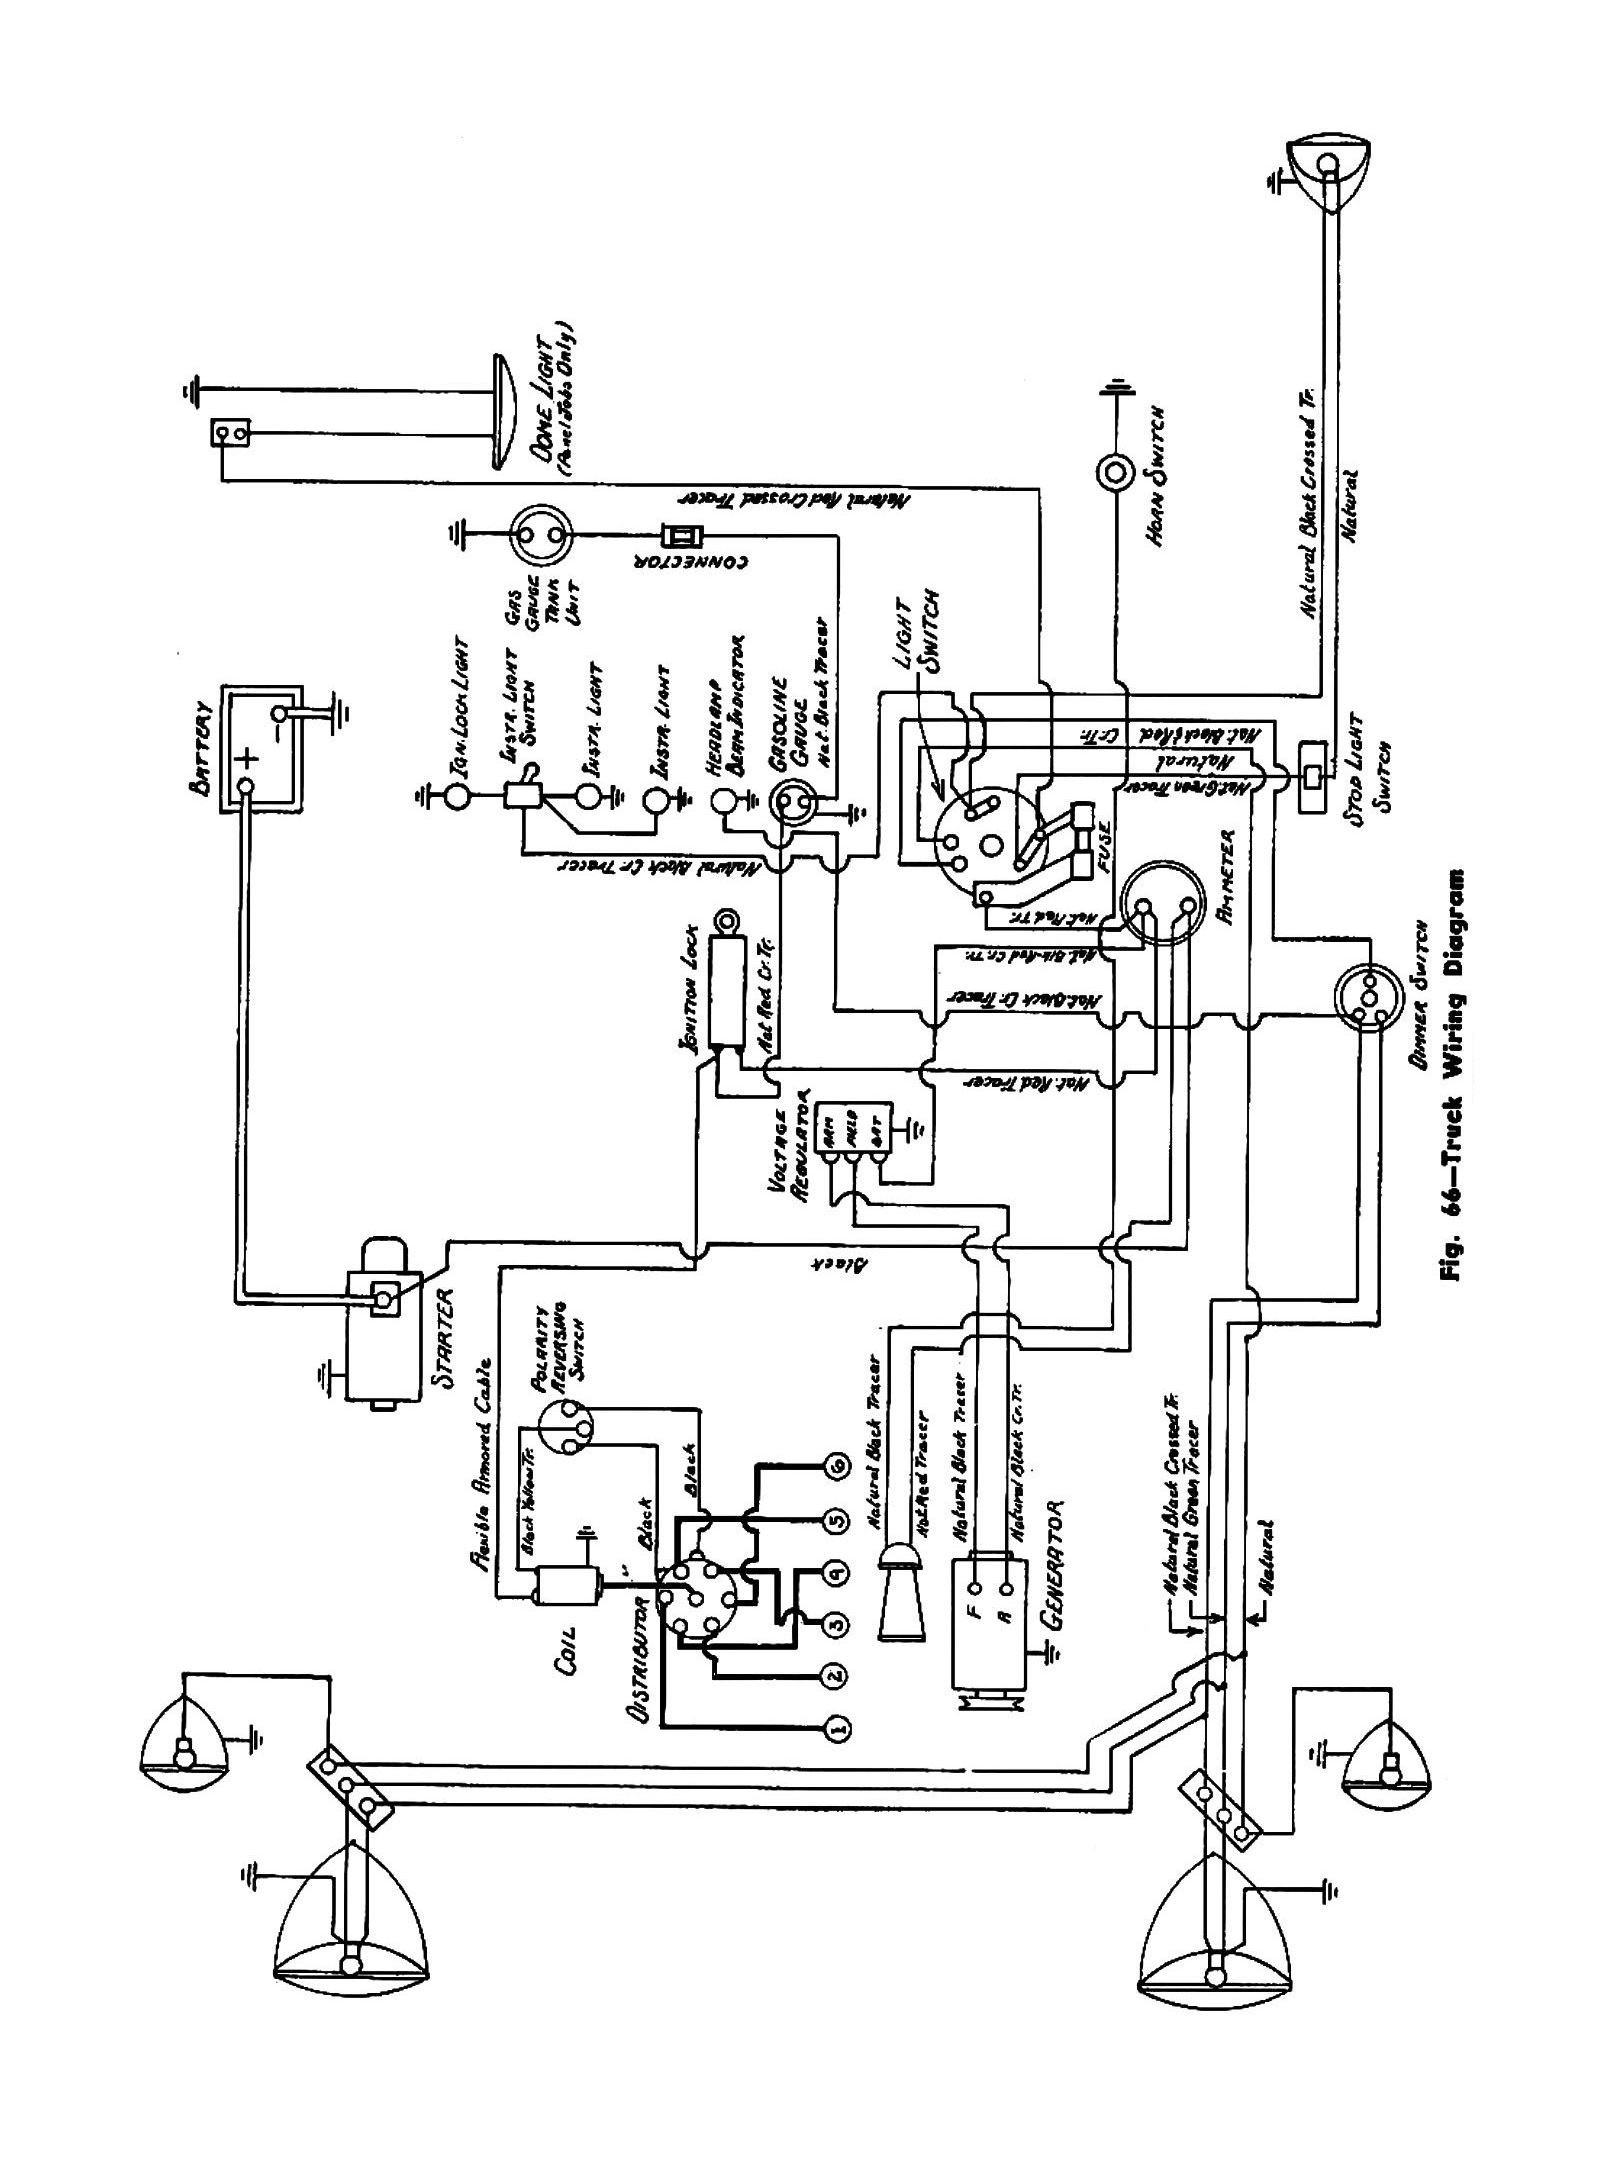 Chevrolet Wiring Diagram